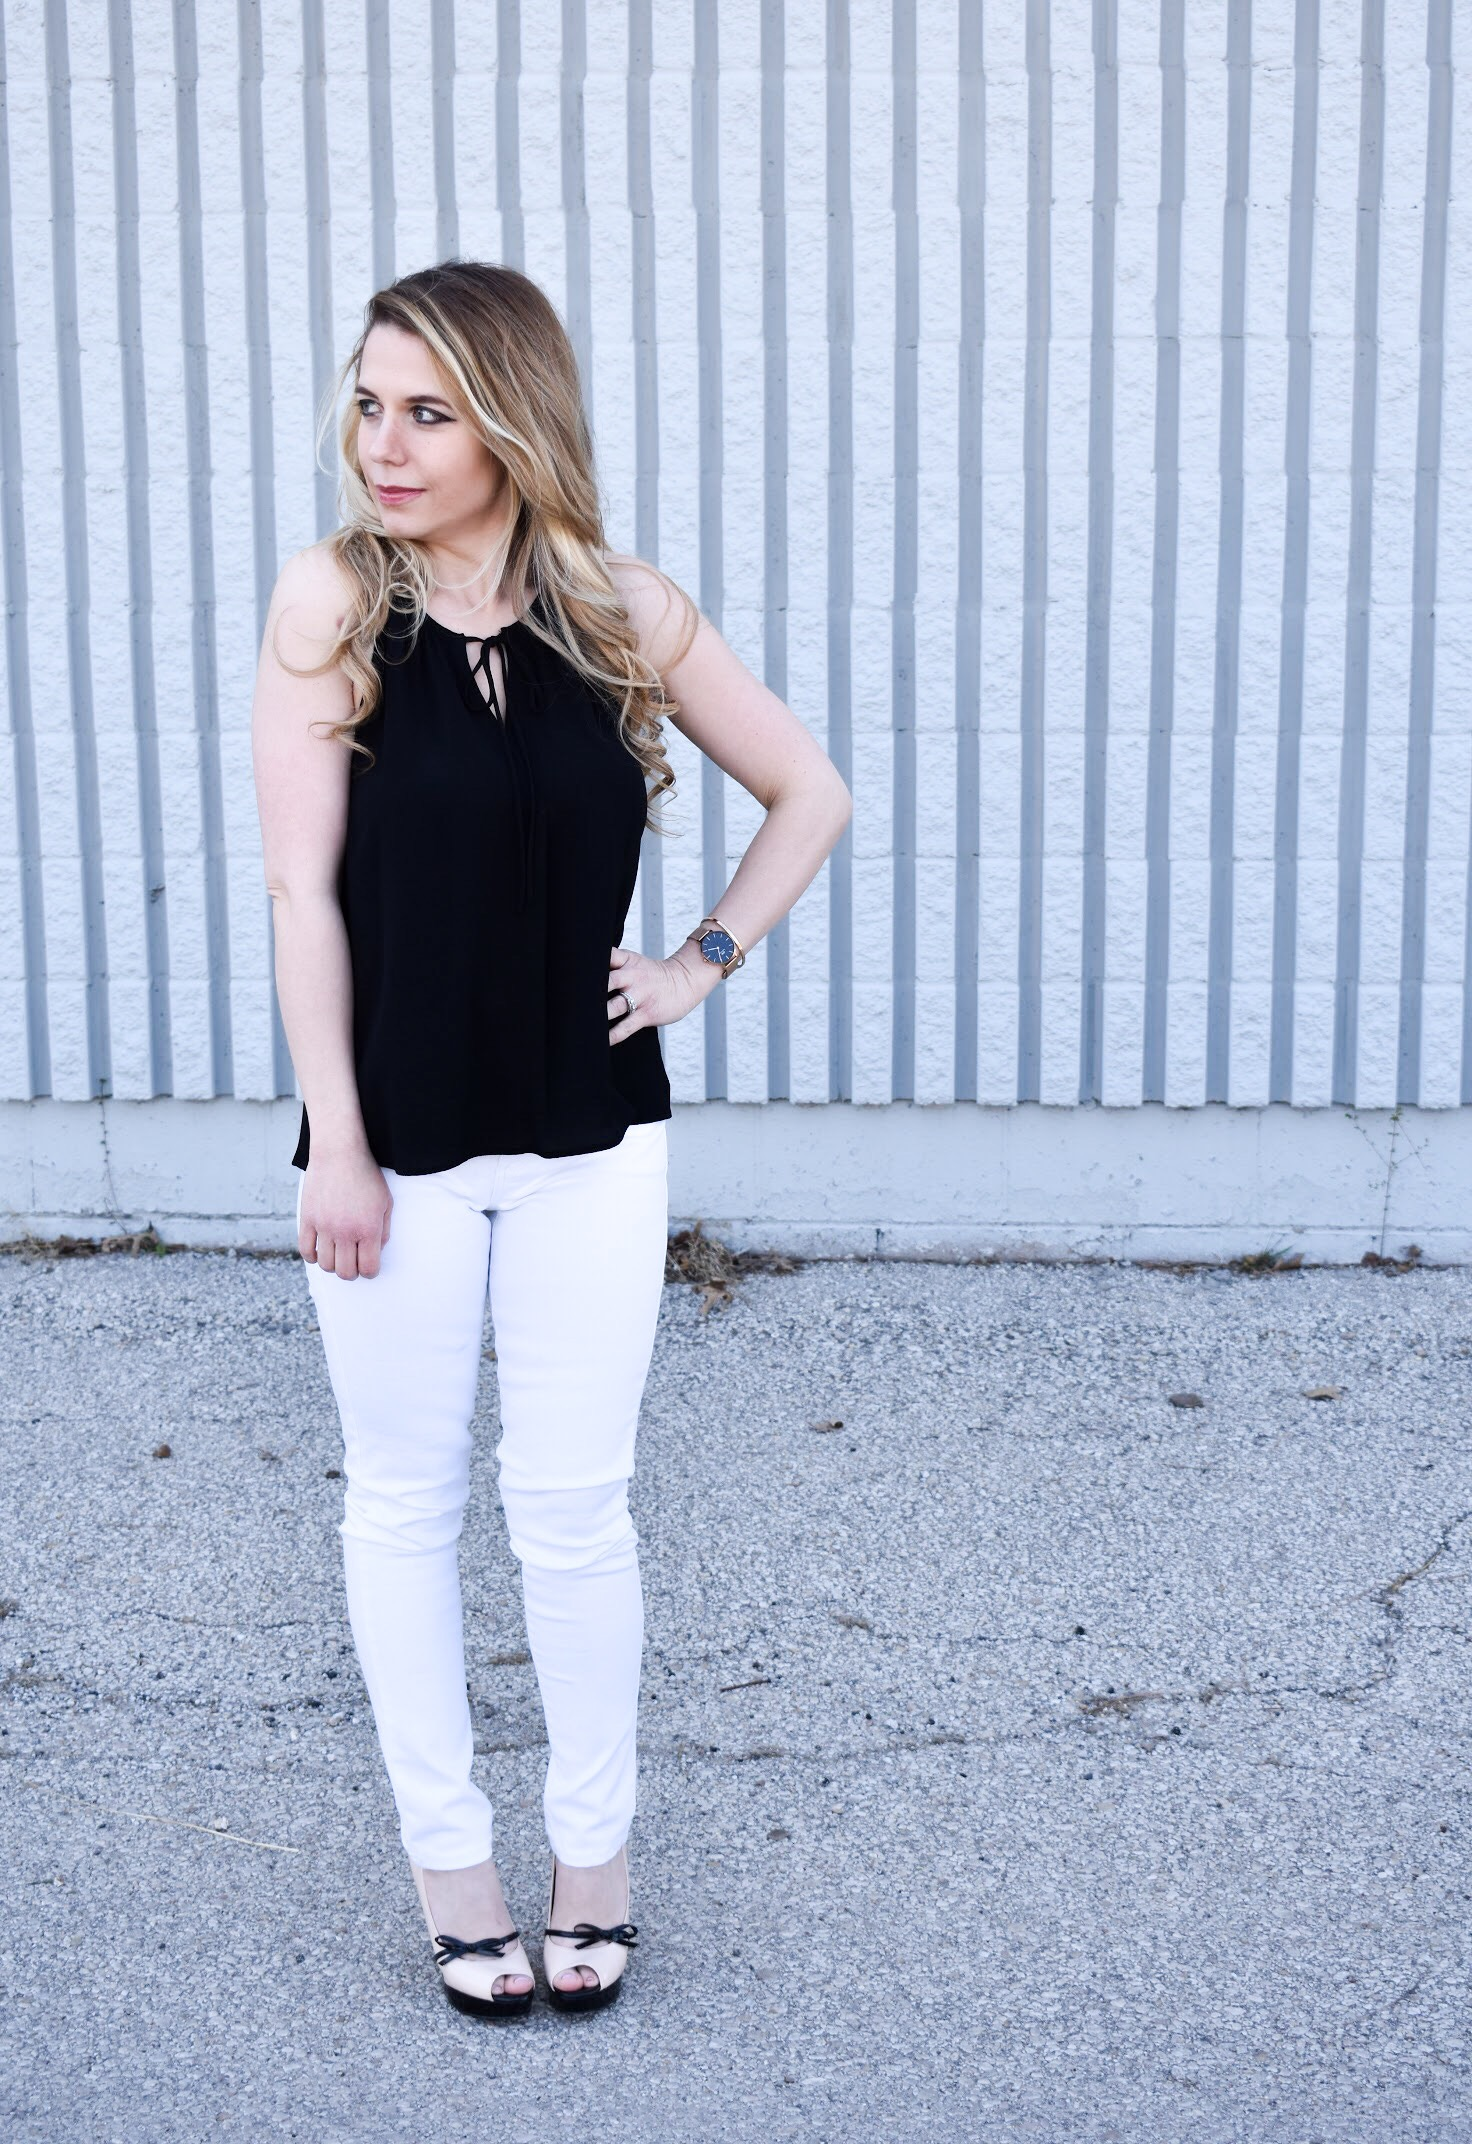 Monochrome Looks for Spring: Some people think you can't wear black and white in the spring. Those people are wrong. Fashion blogger COVET by tricia showcases a springtime monochrome look featuring Banana Republic Stay White Denim and a Tyche black halter top. Minimalist jewelry completes the look. Monochrome is trending for spring 2018, so here's how to effortlessly incorporate it into your wardrobe.